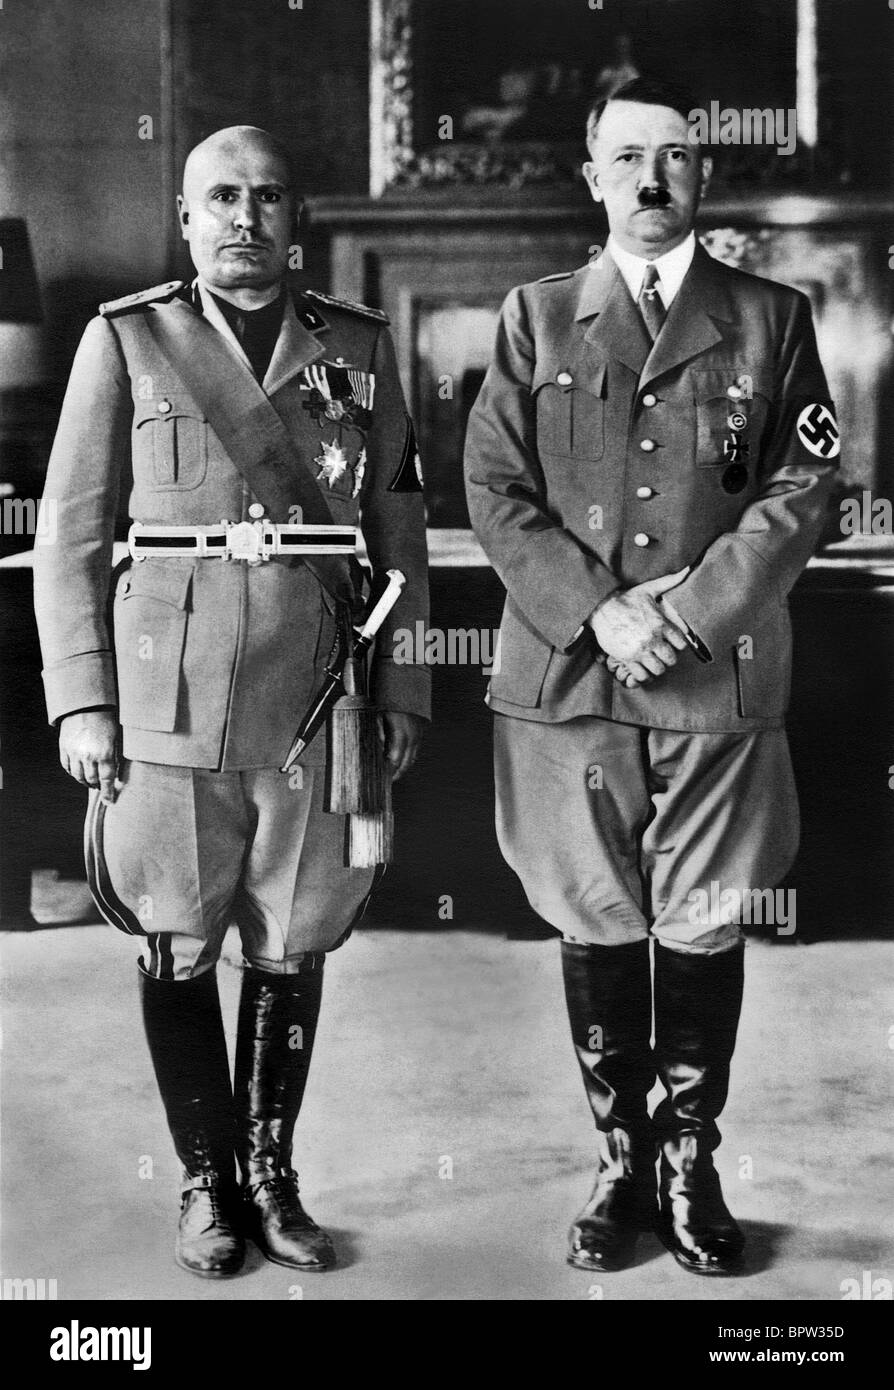 hitler and mussolini Mussolini and hitler, by the grace of having begun in electoral politics and then both being appointed followed a very different route than uncle joe, who muscled himself to power over another powerful rival, leon trotsky.